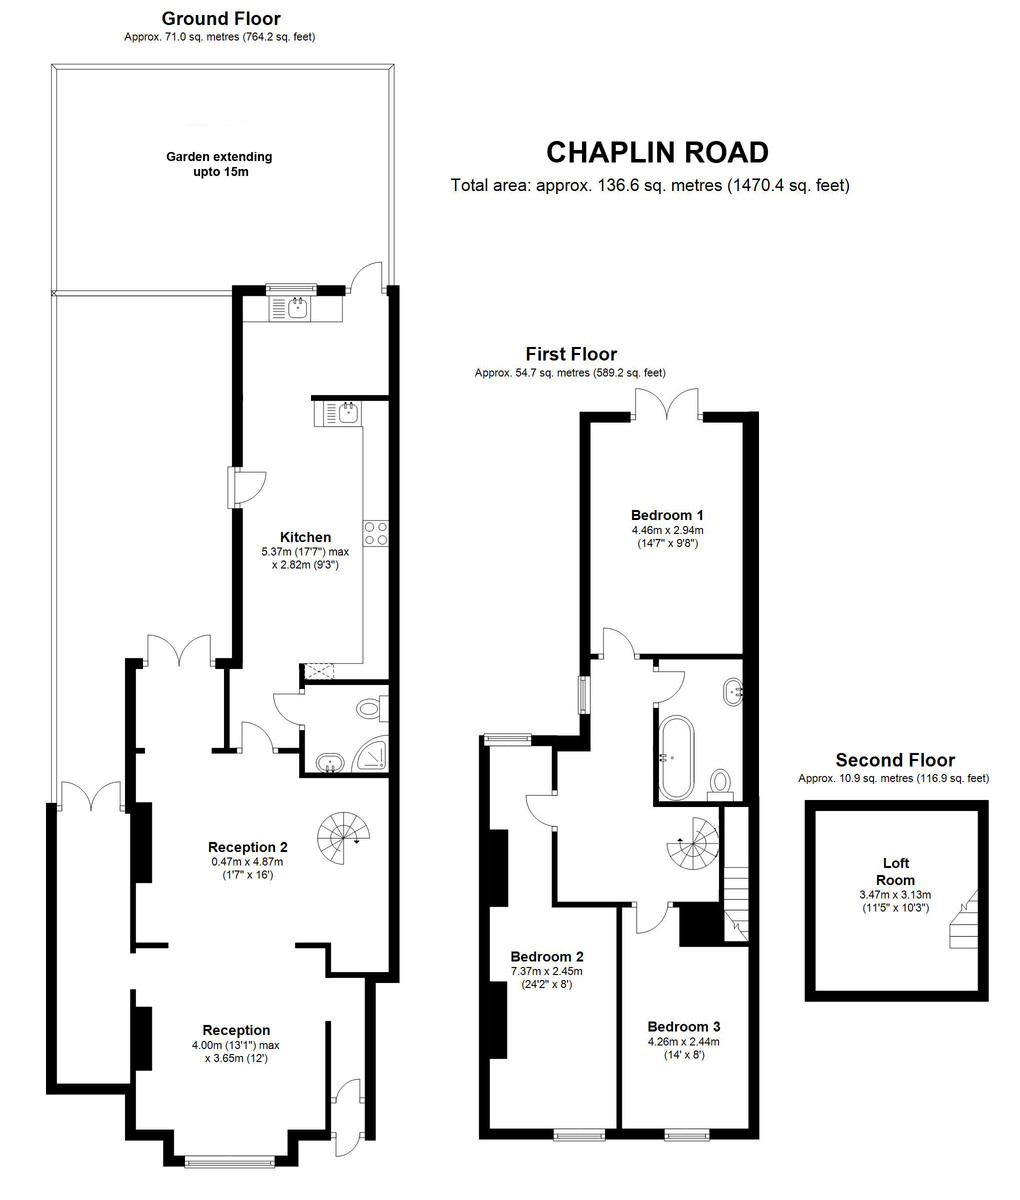 Chaplin Road, Wembley Central, HA0 Floorplan